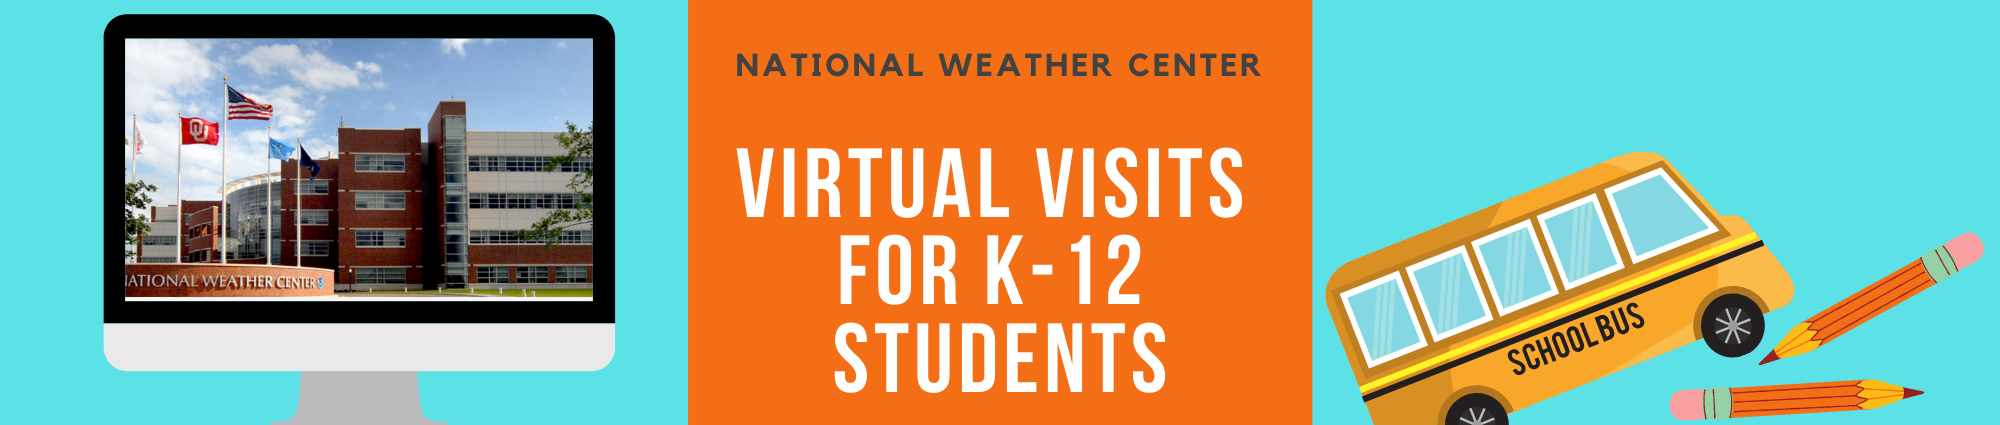 National Weather Center Virtual Visits for K-12 Students